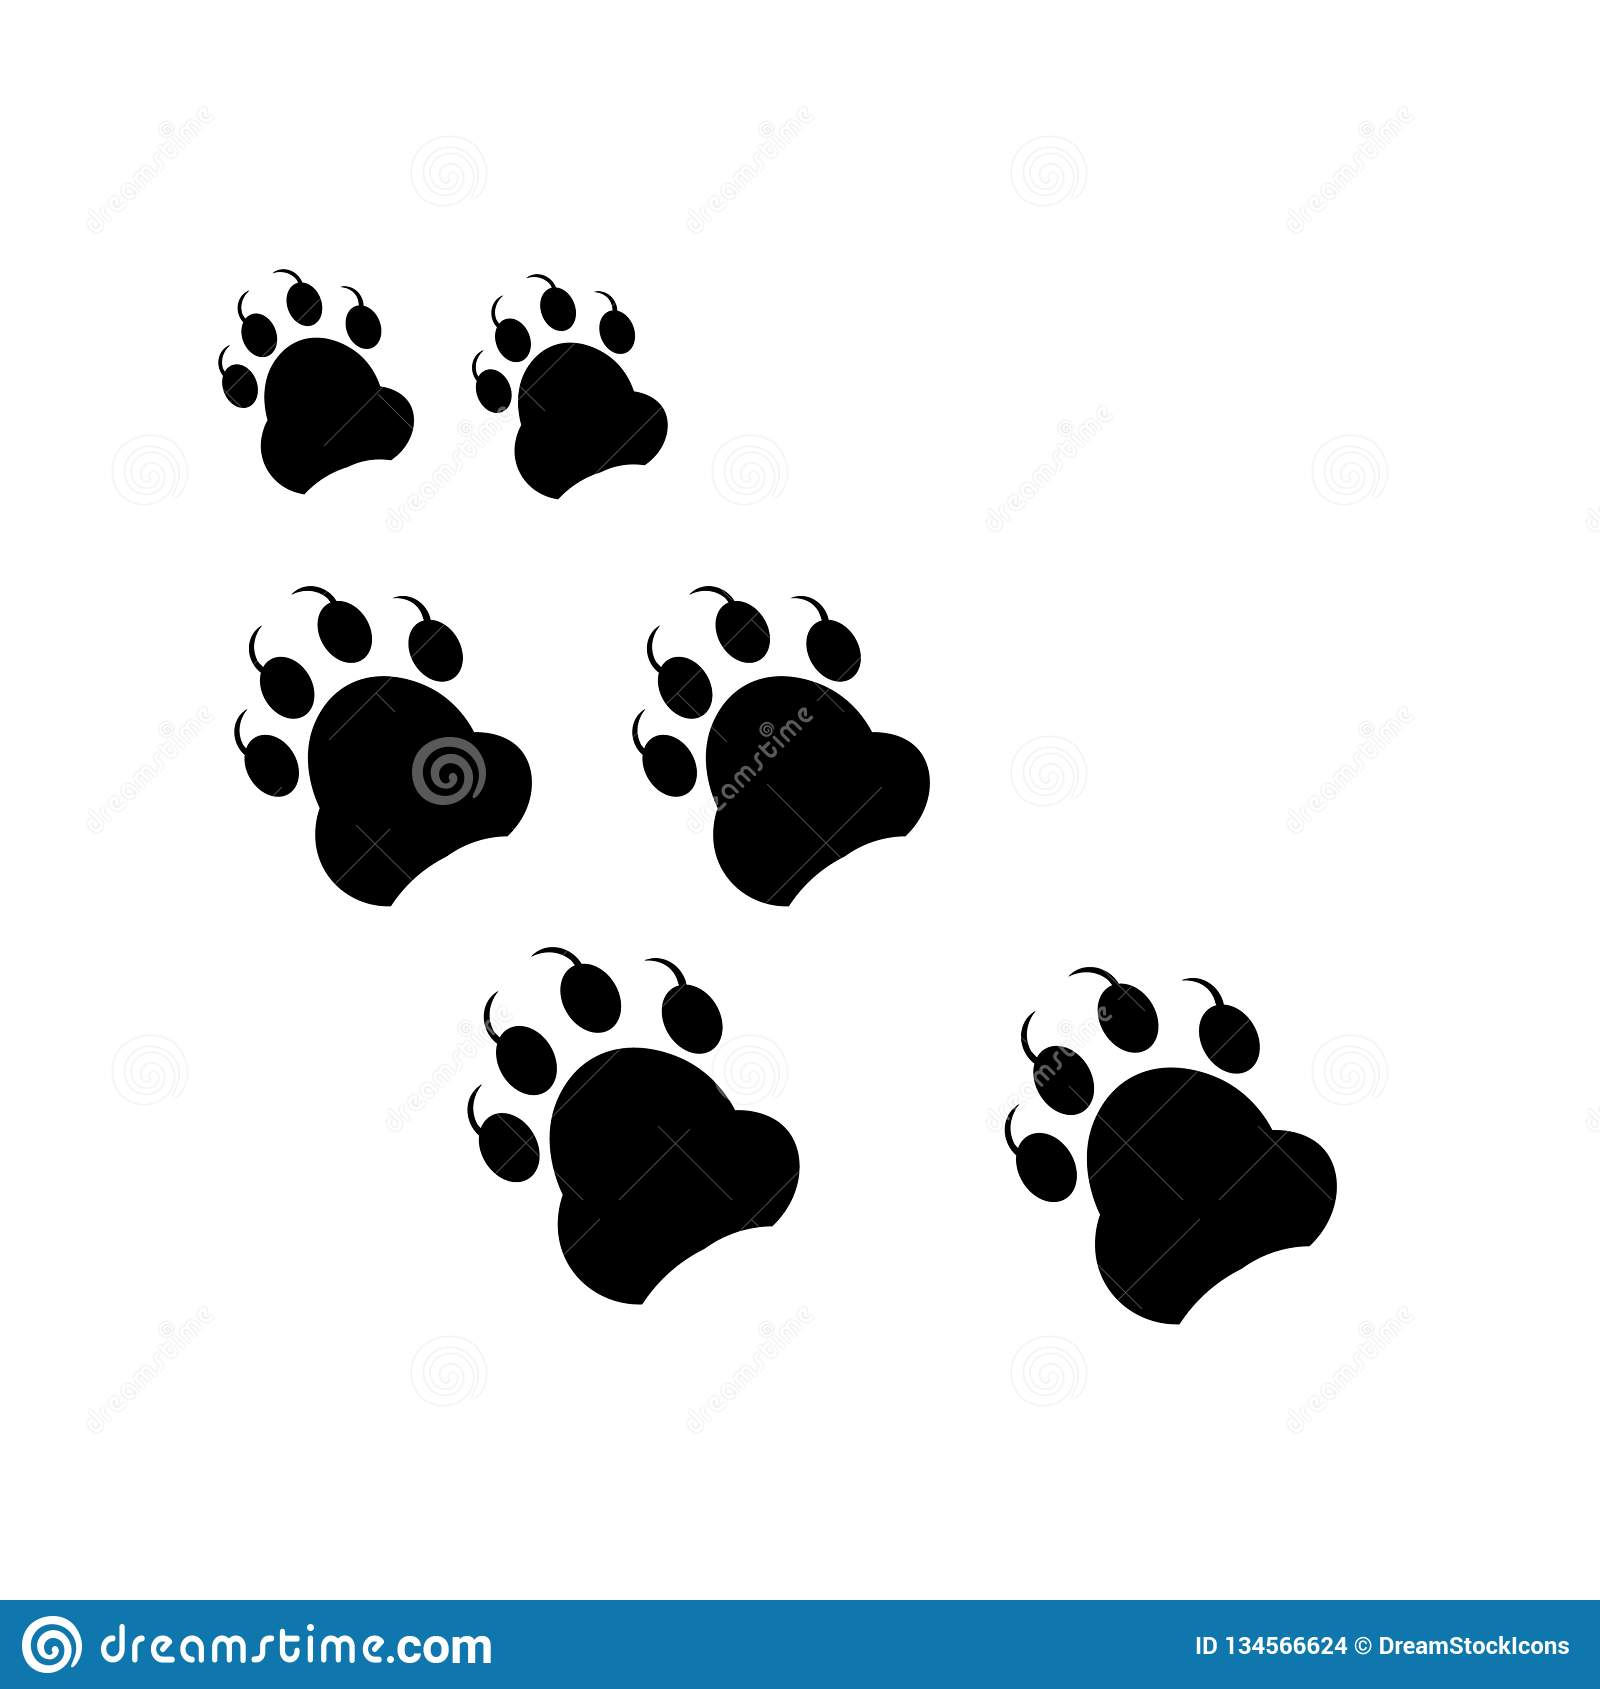 Footprint icon vector sign and symbol isolated on white background, Footprint logo concept